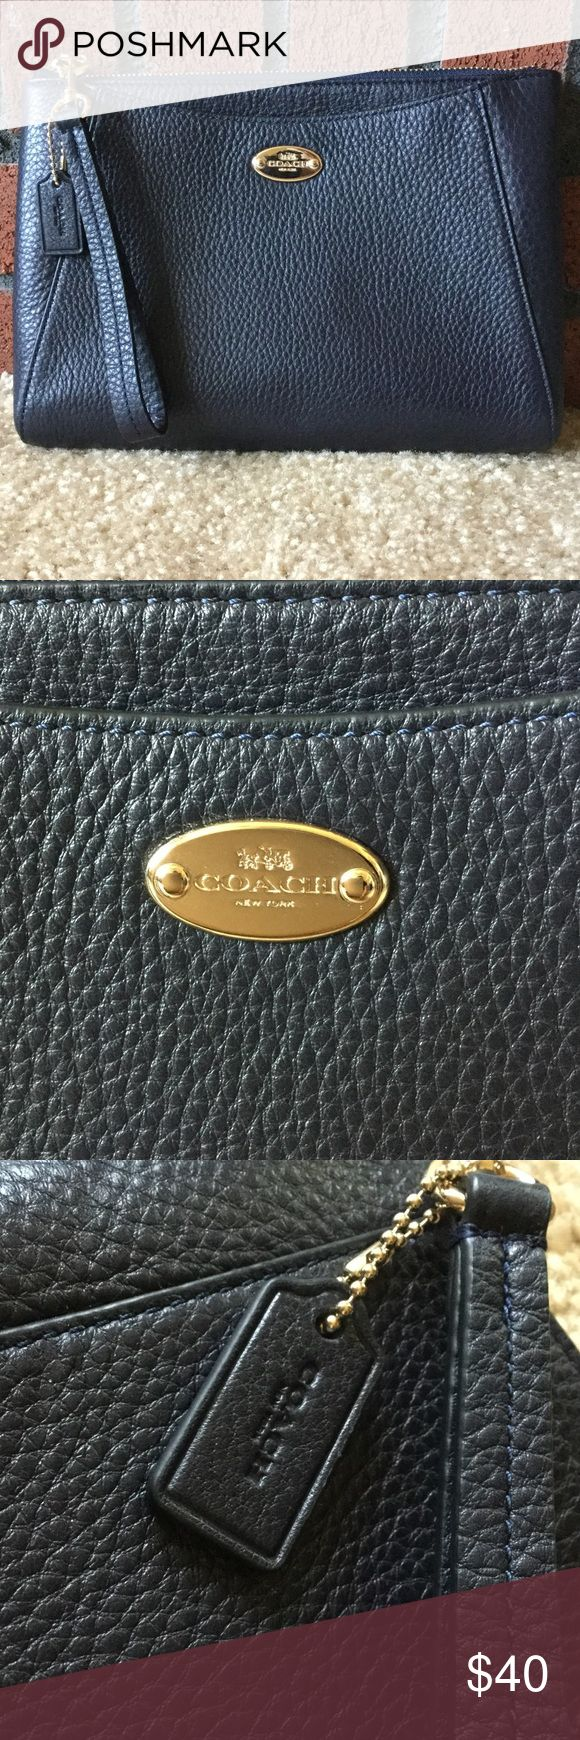 NWOT Coach Navy Blue Wristlet/Small Bag Brand New Never Used Navy Blue Coach Wristlet/Small Bag, large enough to fit a regular full size wallet and sunglasses comfortably, comes with key tag and pull zipper, front pocket to fit a cell phone as seen in picture Coach Bags Clutches & Wristlets